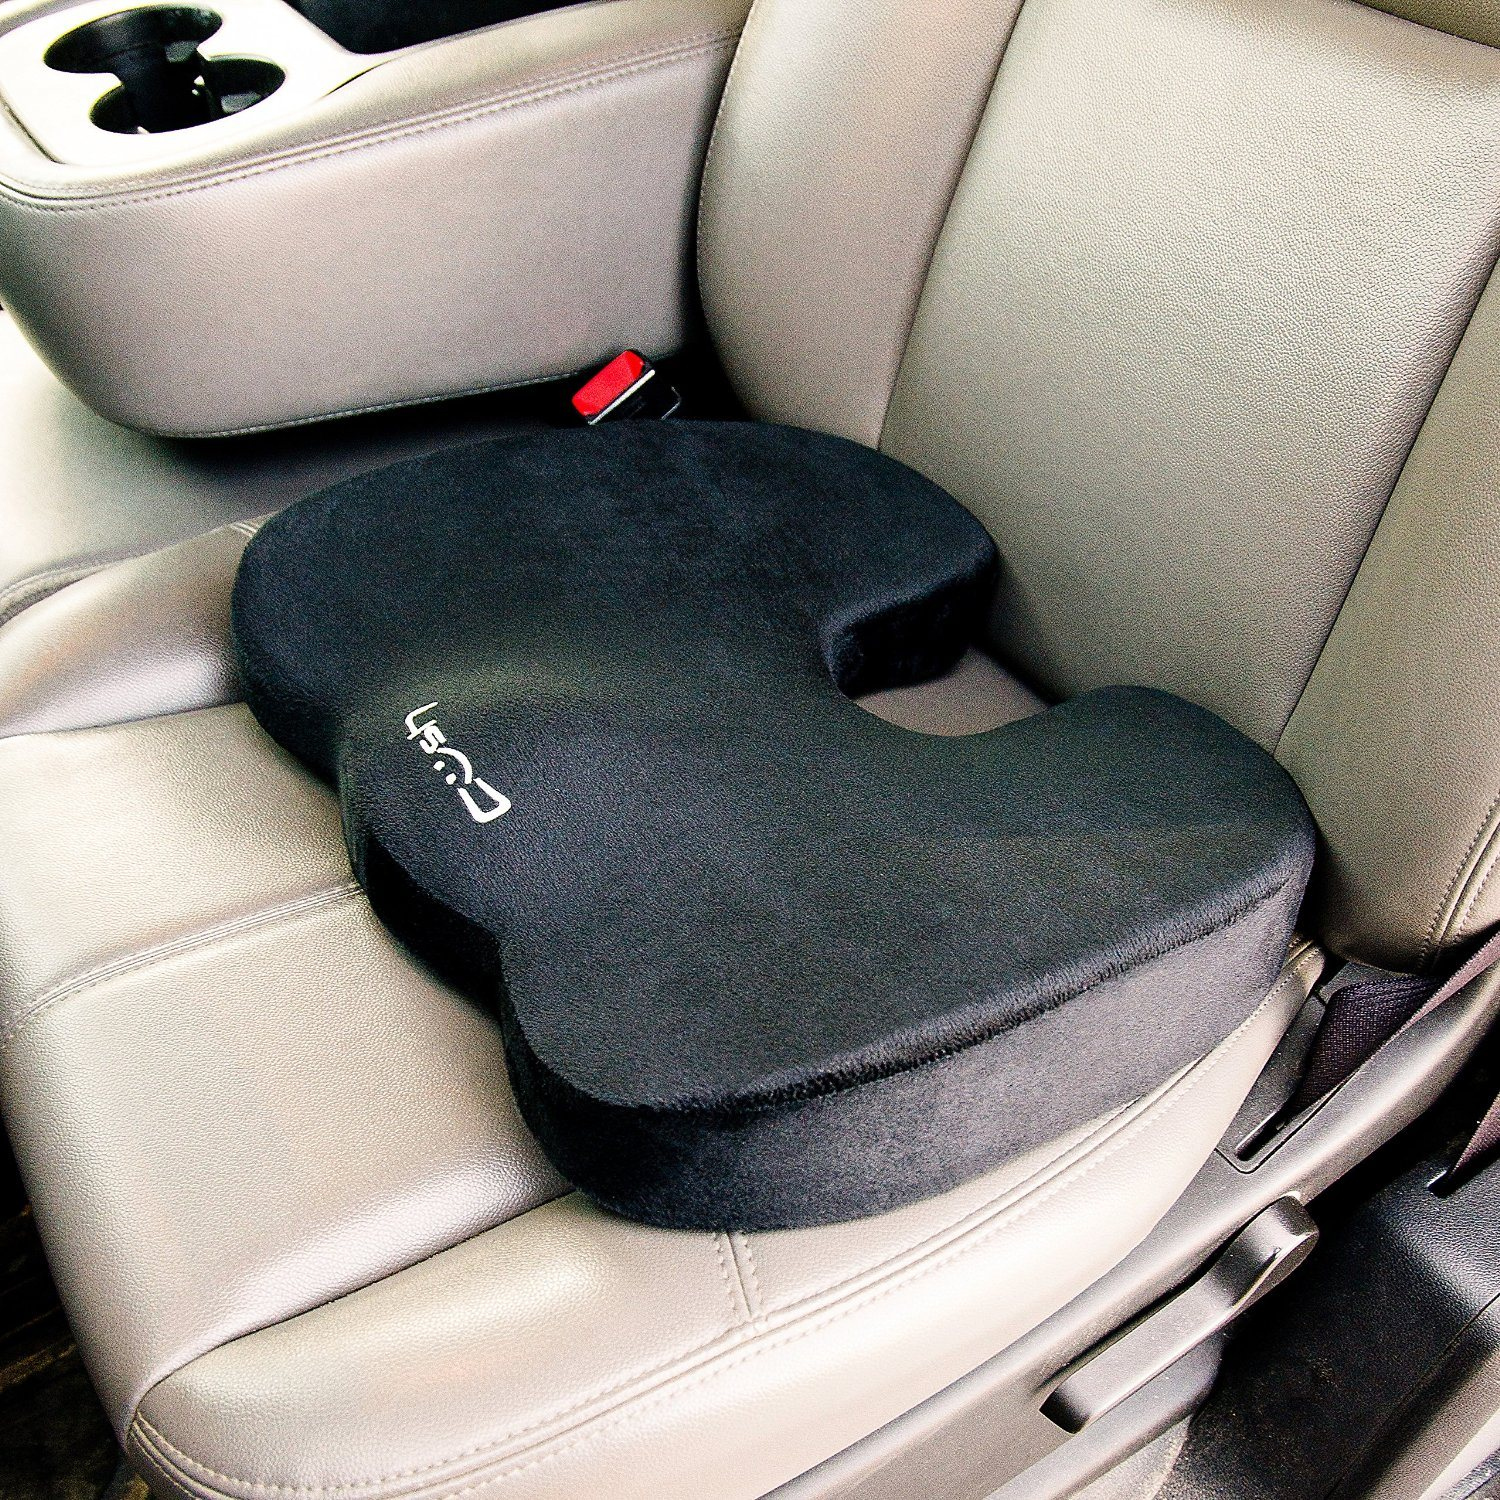 What should I look out for when buying a seat cushion?